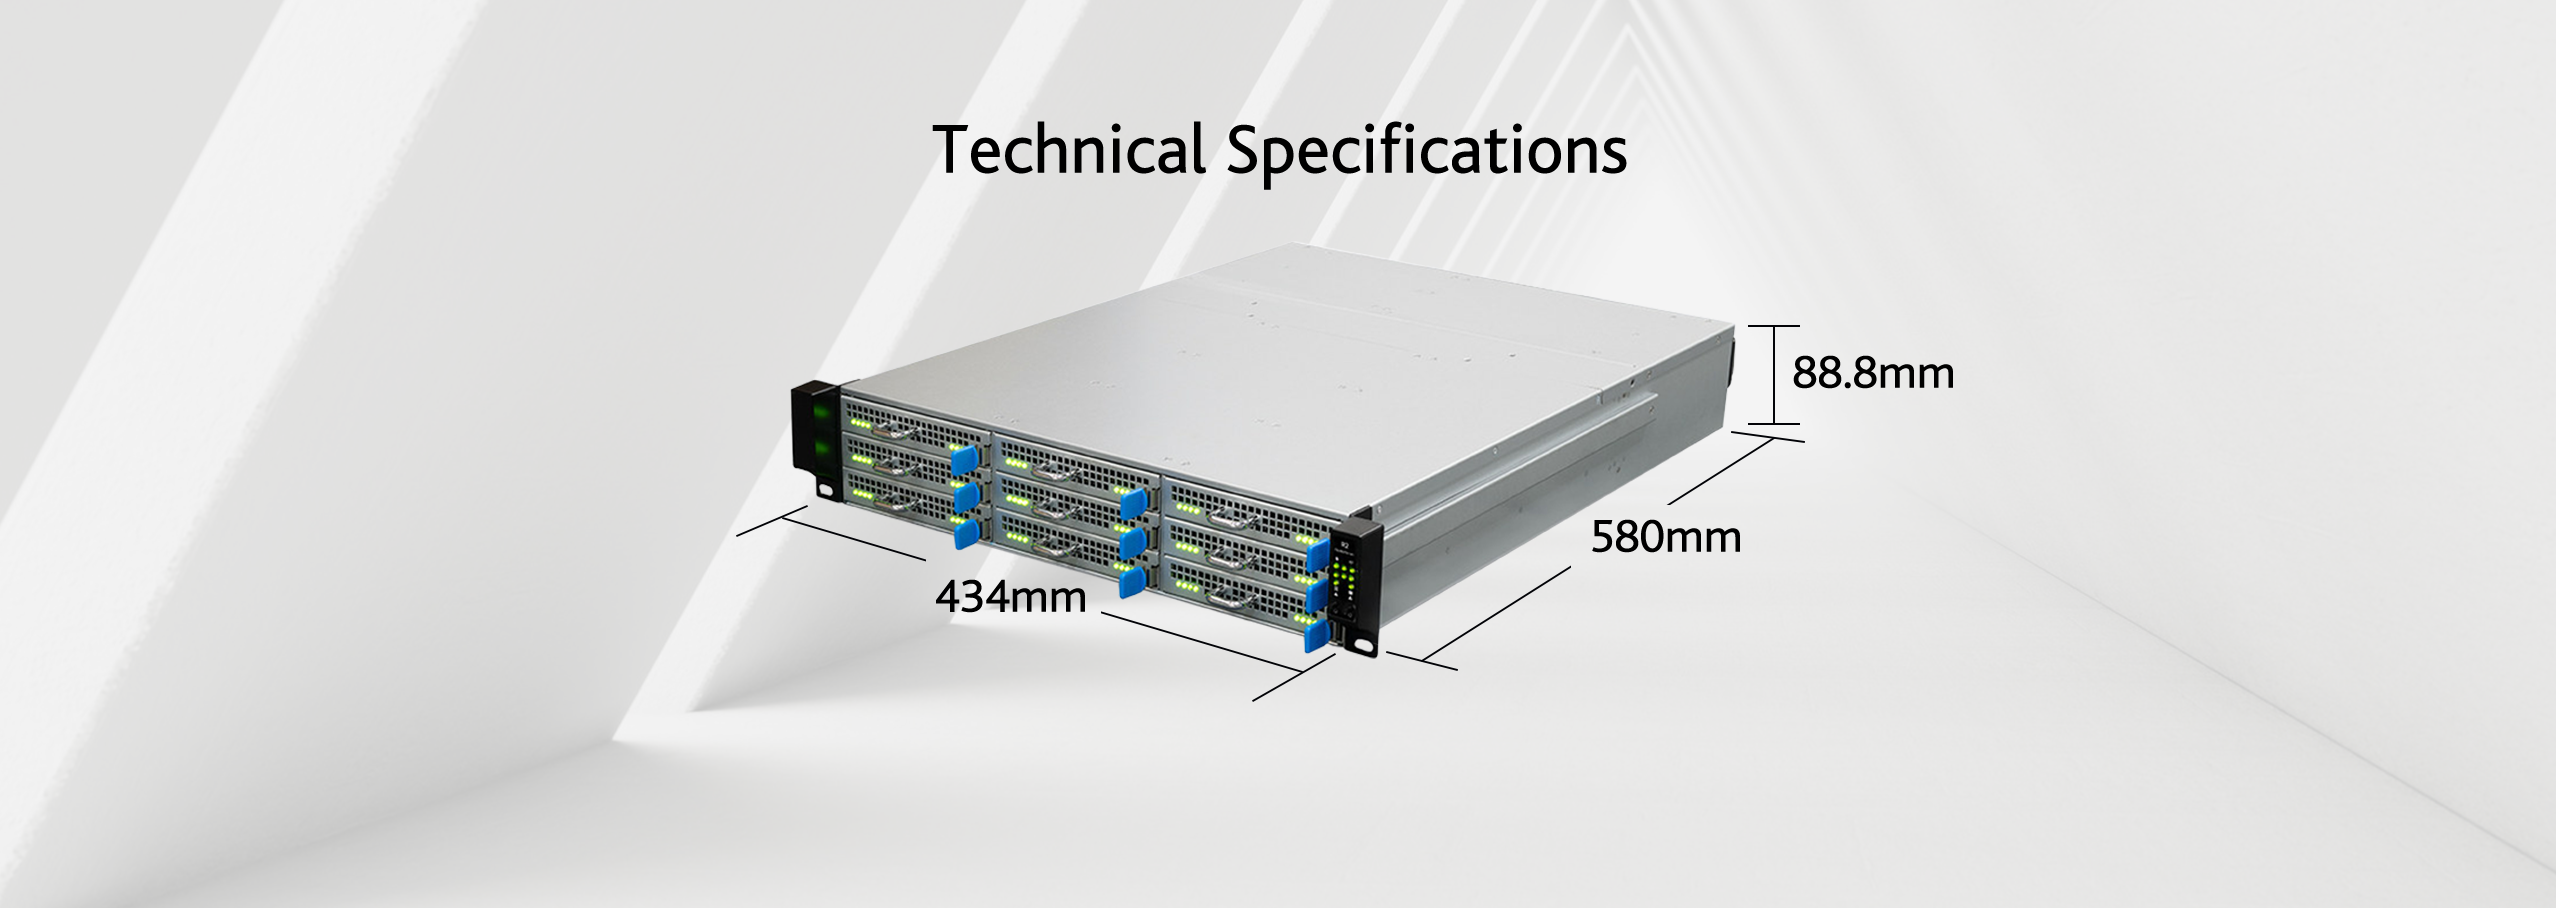 Technical Specifications for Kauricone Cluster Server U2